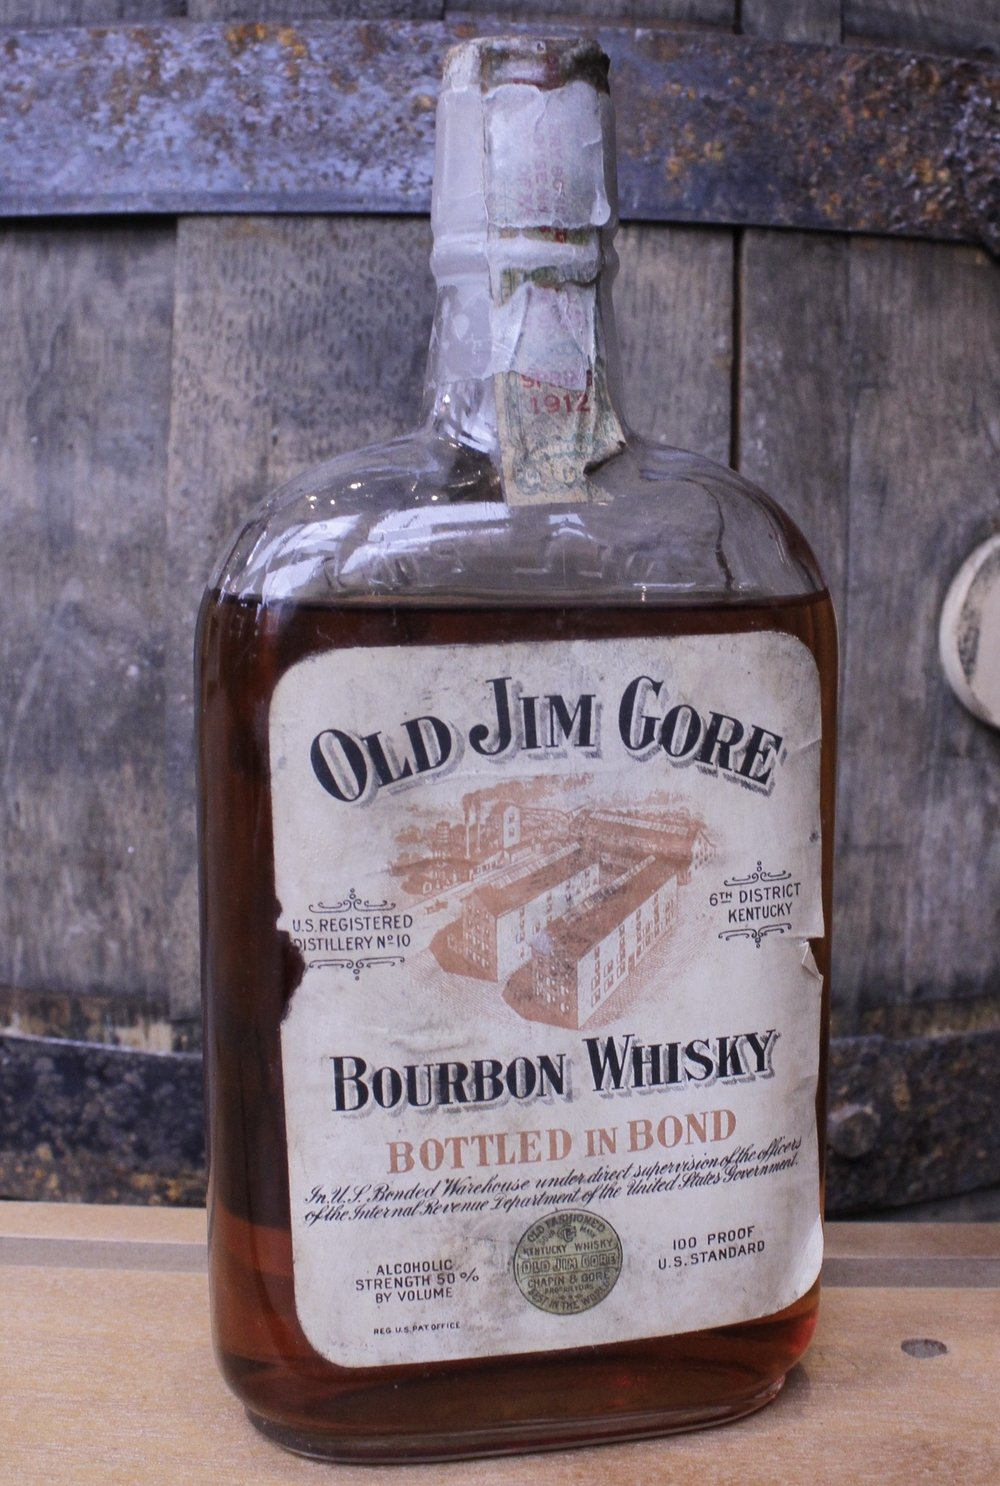 """OLD JIM GORE BOURBON WHISKY    About the Product   One pint of Kentucky bourbon (100 proof), aged 13 years, bottled in bond. Distilled in spring 1912* by Wiglesworth Bros. Co. Bottled in fall 1925* by James E. Pepper & Co.  Named after one of its Chicago-based proprietors [Chapin & Gore] and advertised as the """"Best in the World,"""" this old-fashioned sour mash bourbon has a rare mellow flavor.   About the Distillery   6th Dist., RD #10, Wiglesworth Bros. Co. (1869 – 1919). Harrison County, Kentucky, USA.  Located on the South Fork of the Licking River four miles northwest of Cynthiana, this distillery was built in 1856 by John Poindexter. In 1869 the Wiglesworth family acquired it, tore it down and rebuilt it. By 1910 the mashing capacity had been increased to 300 bushels per day, and there were three bonded warehouses with a storage capacity for 20,000 barrels. In the late 1910s the officers were J. M. Wiglesworth, president and W. T. Wiglesworth, secretary-treasurer. Products included Old G. W. Taylor, Poindexter Bourbon, and Wiglesworth Bros. Sweet Mash. The distillery closed at Prohibition.  In 1924 all the whiskey in storage was transferred to the concentration warehouses of James E. Pepper & Co., a facility in Lexington that had been leased in 1907 for 20 years by Joseph Wolf of Chicago, where it was bottled for medicinal spirits."""